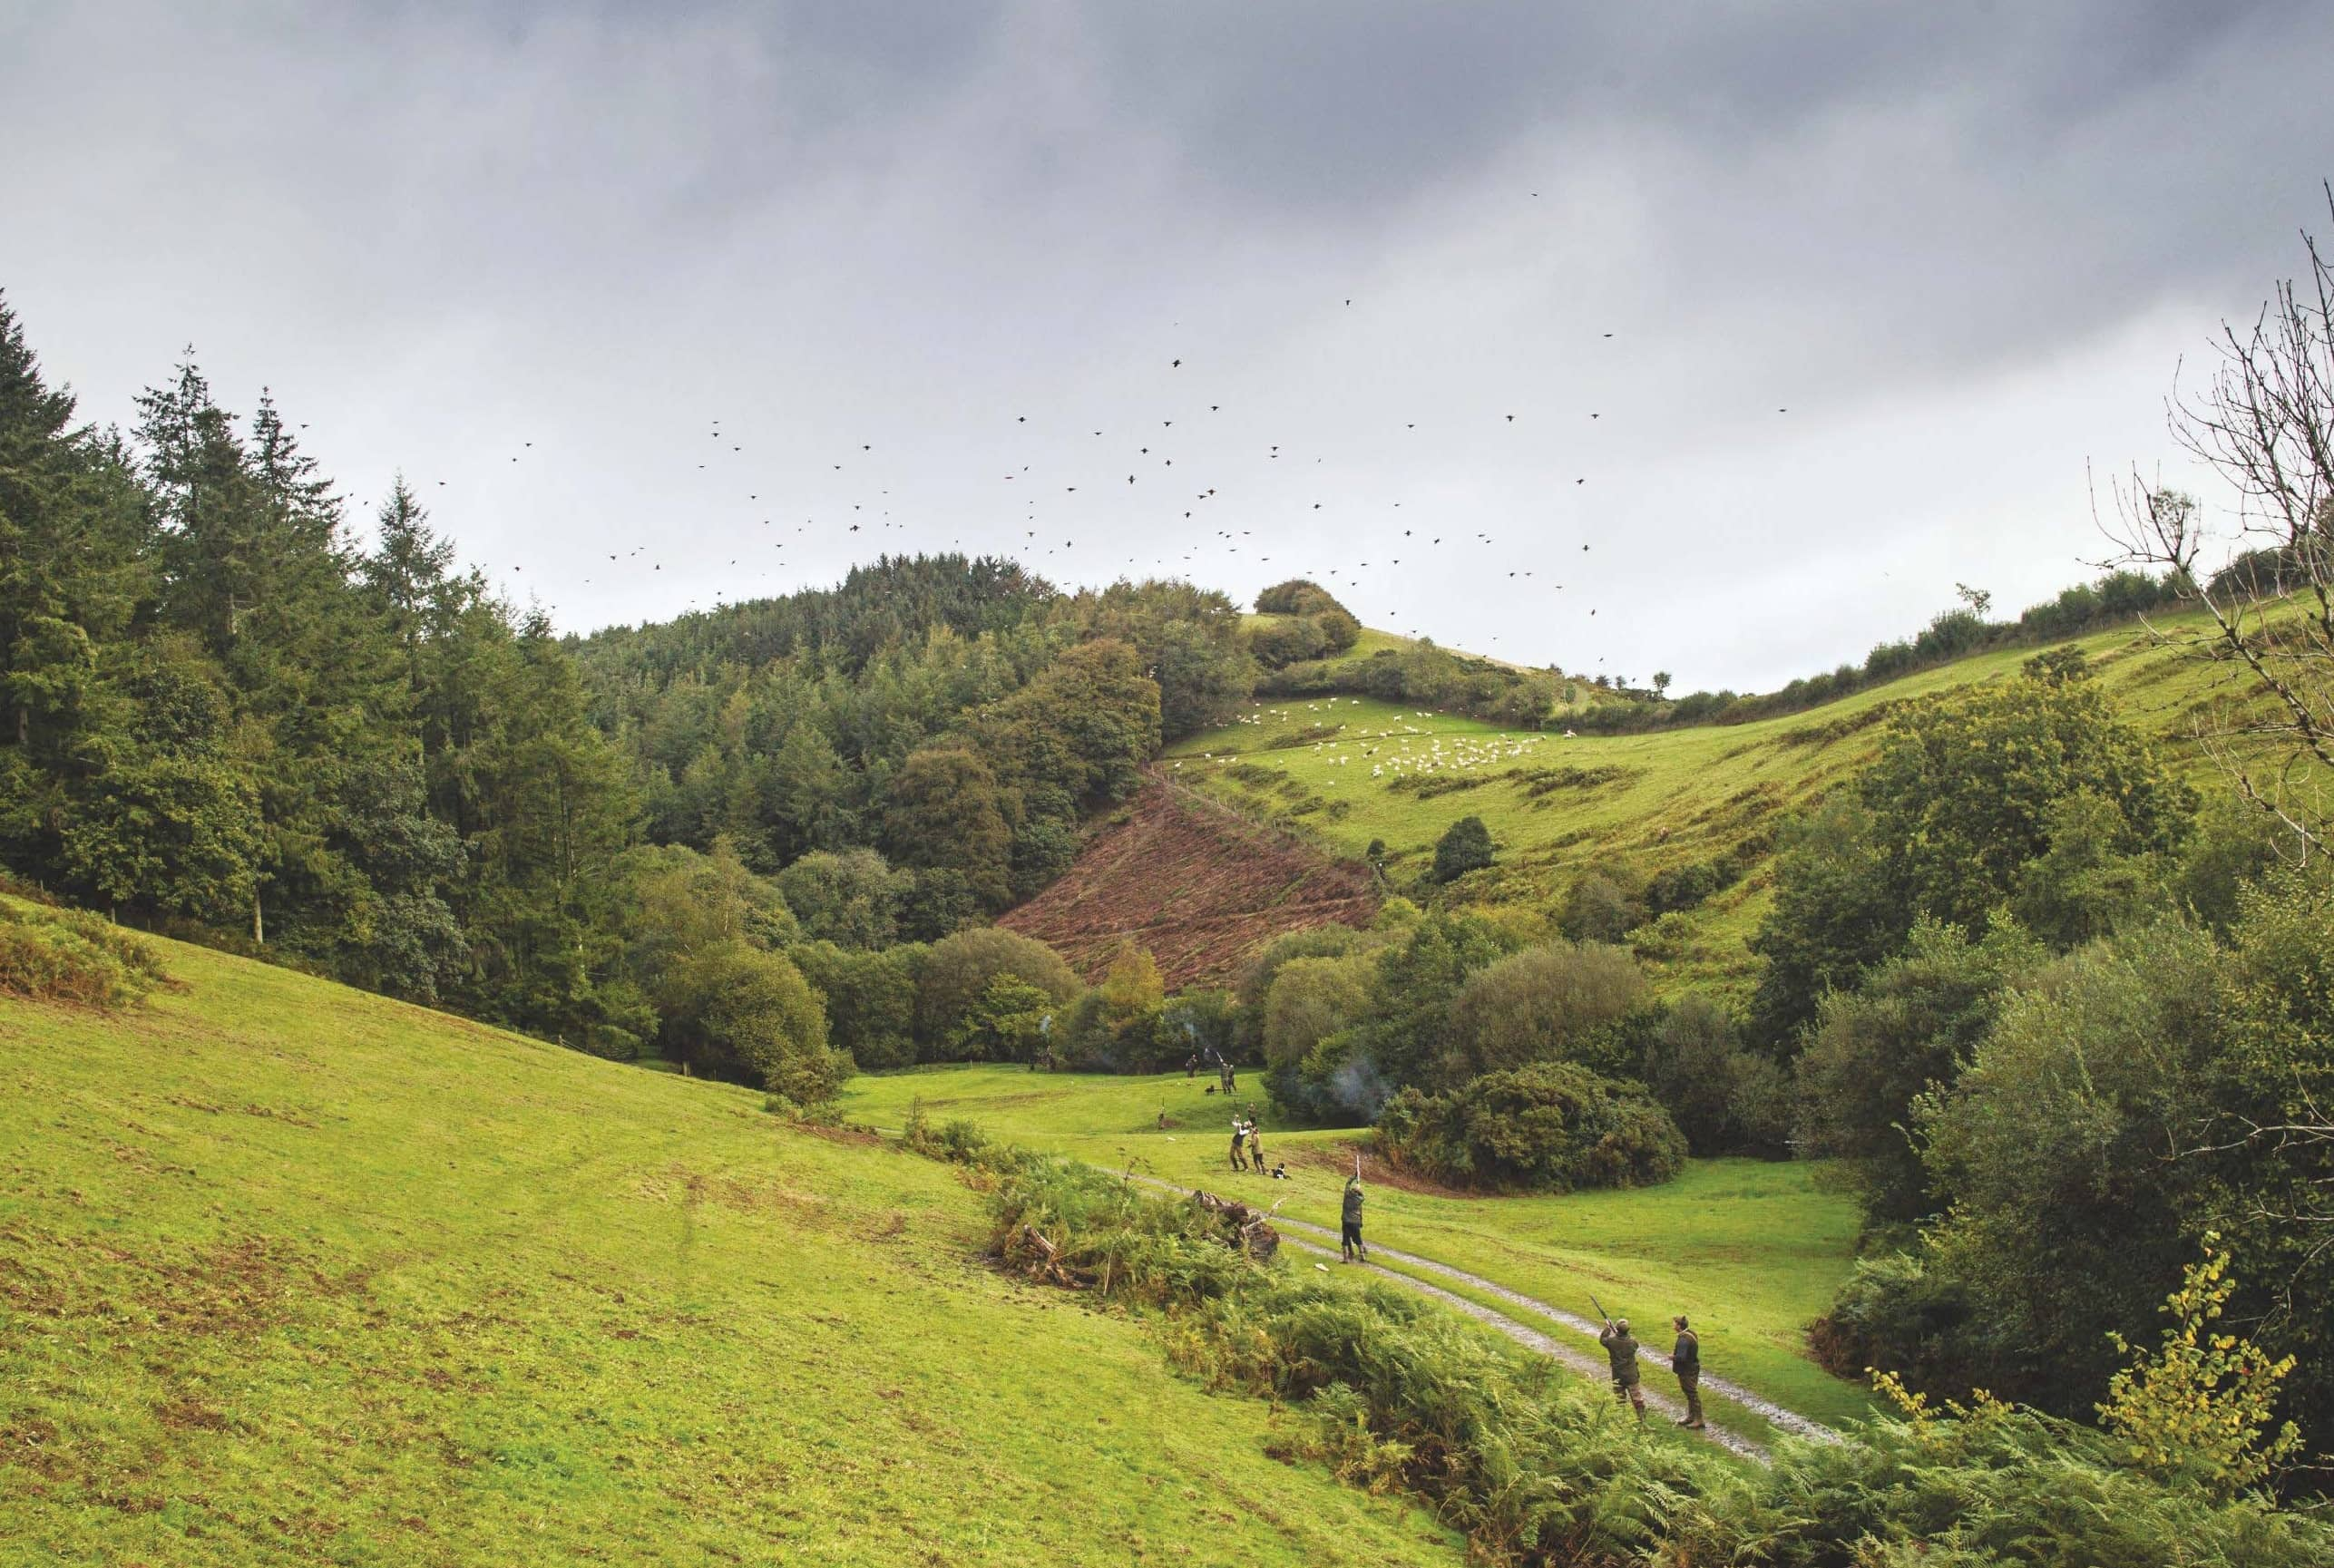 A dazzling partridge day on Exmoor